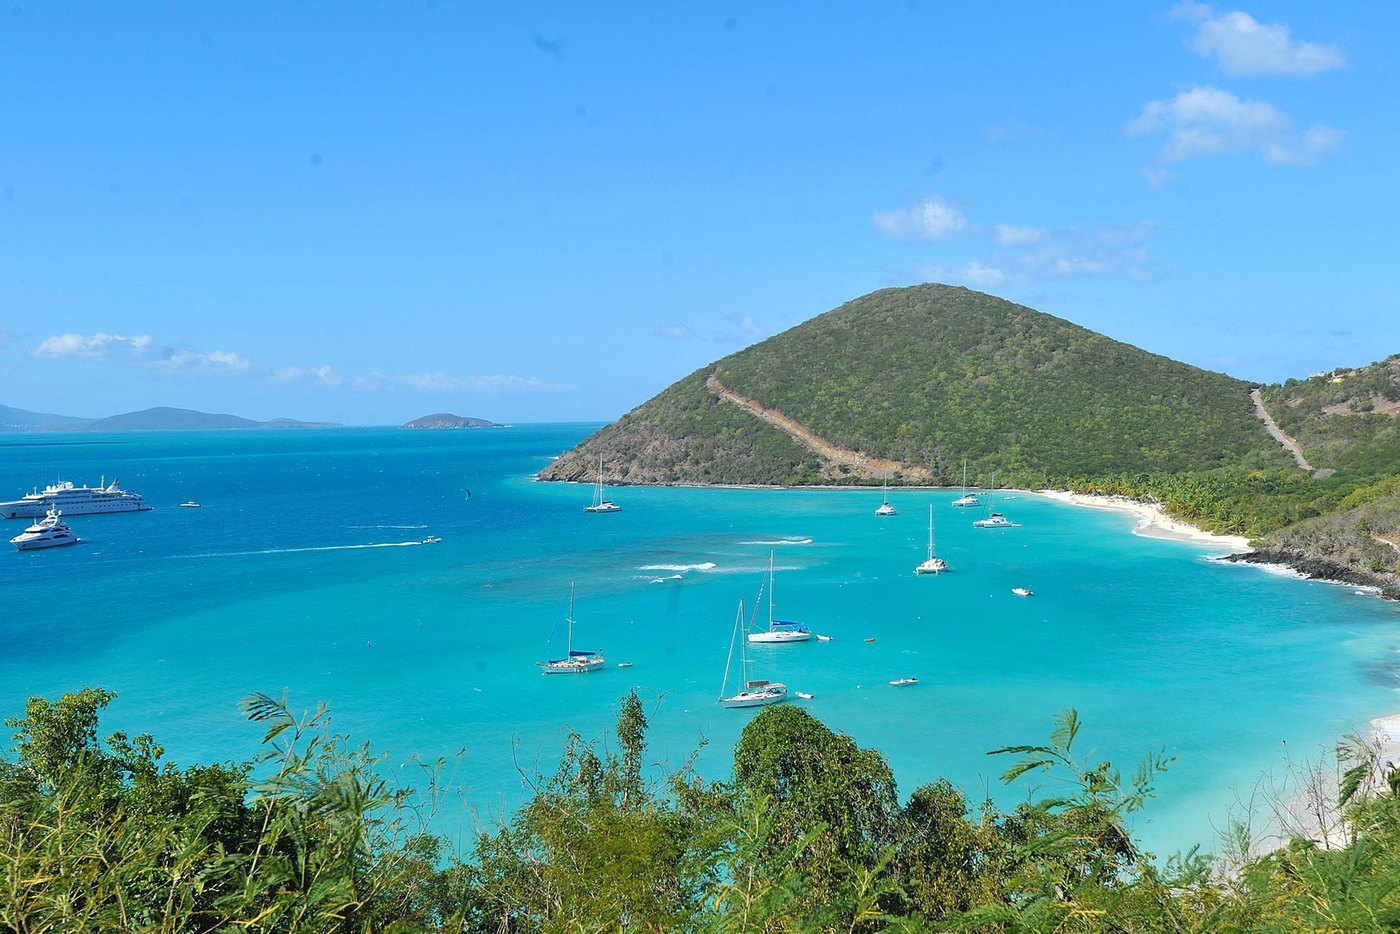 Superyachts lined-up in the port of St. Thomas